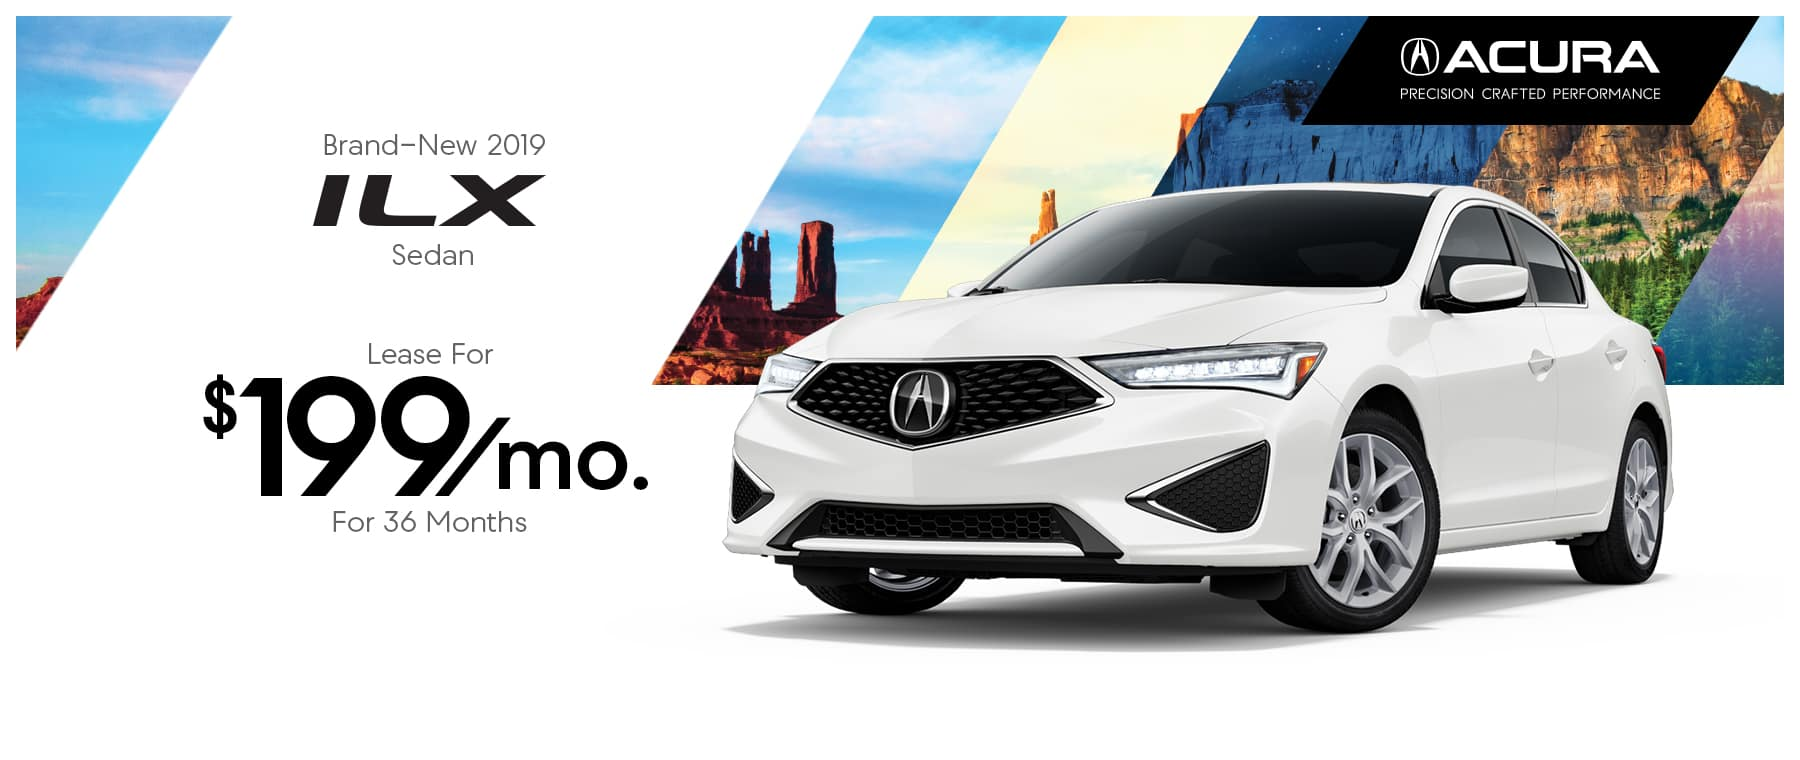 Acura New and Used Car Dealer in Woodside, NY | Paragon Acura